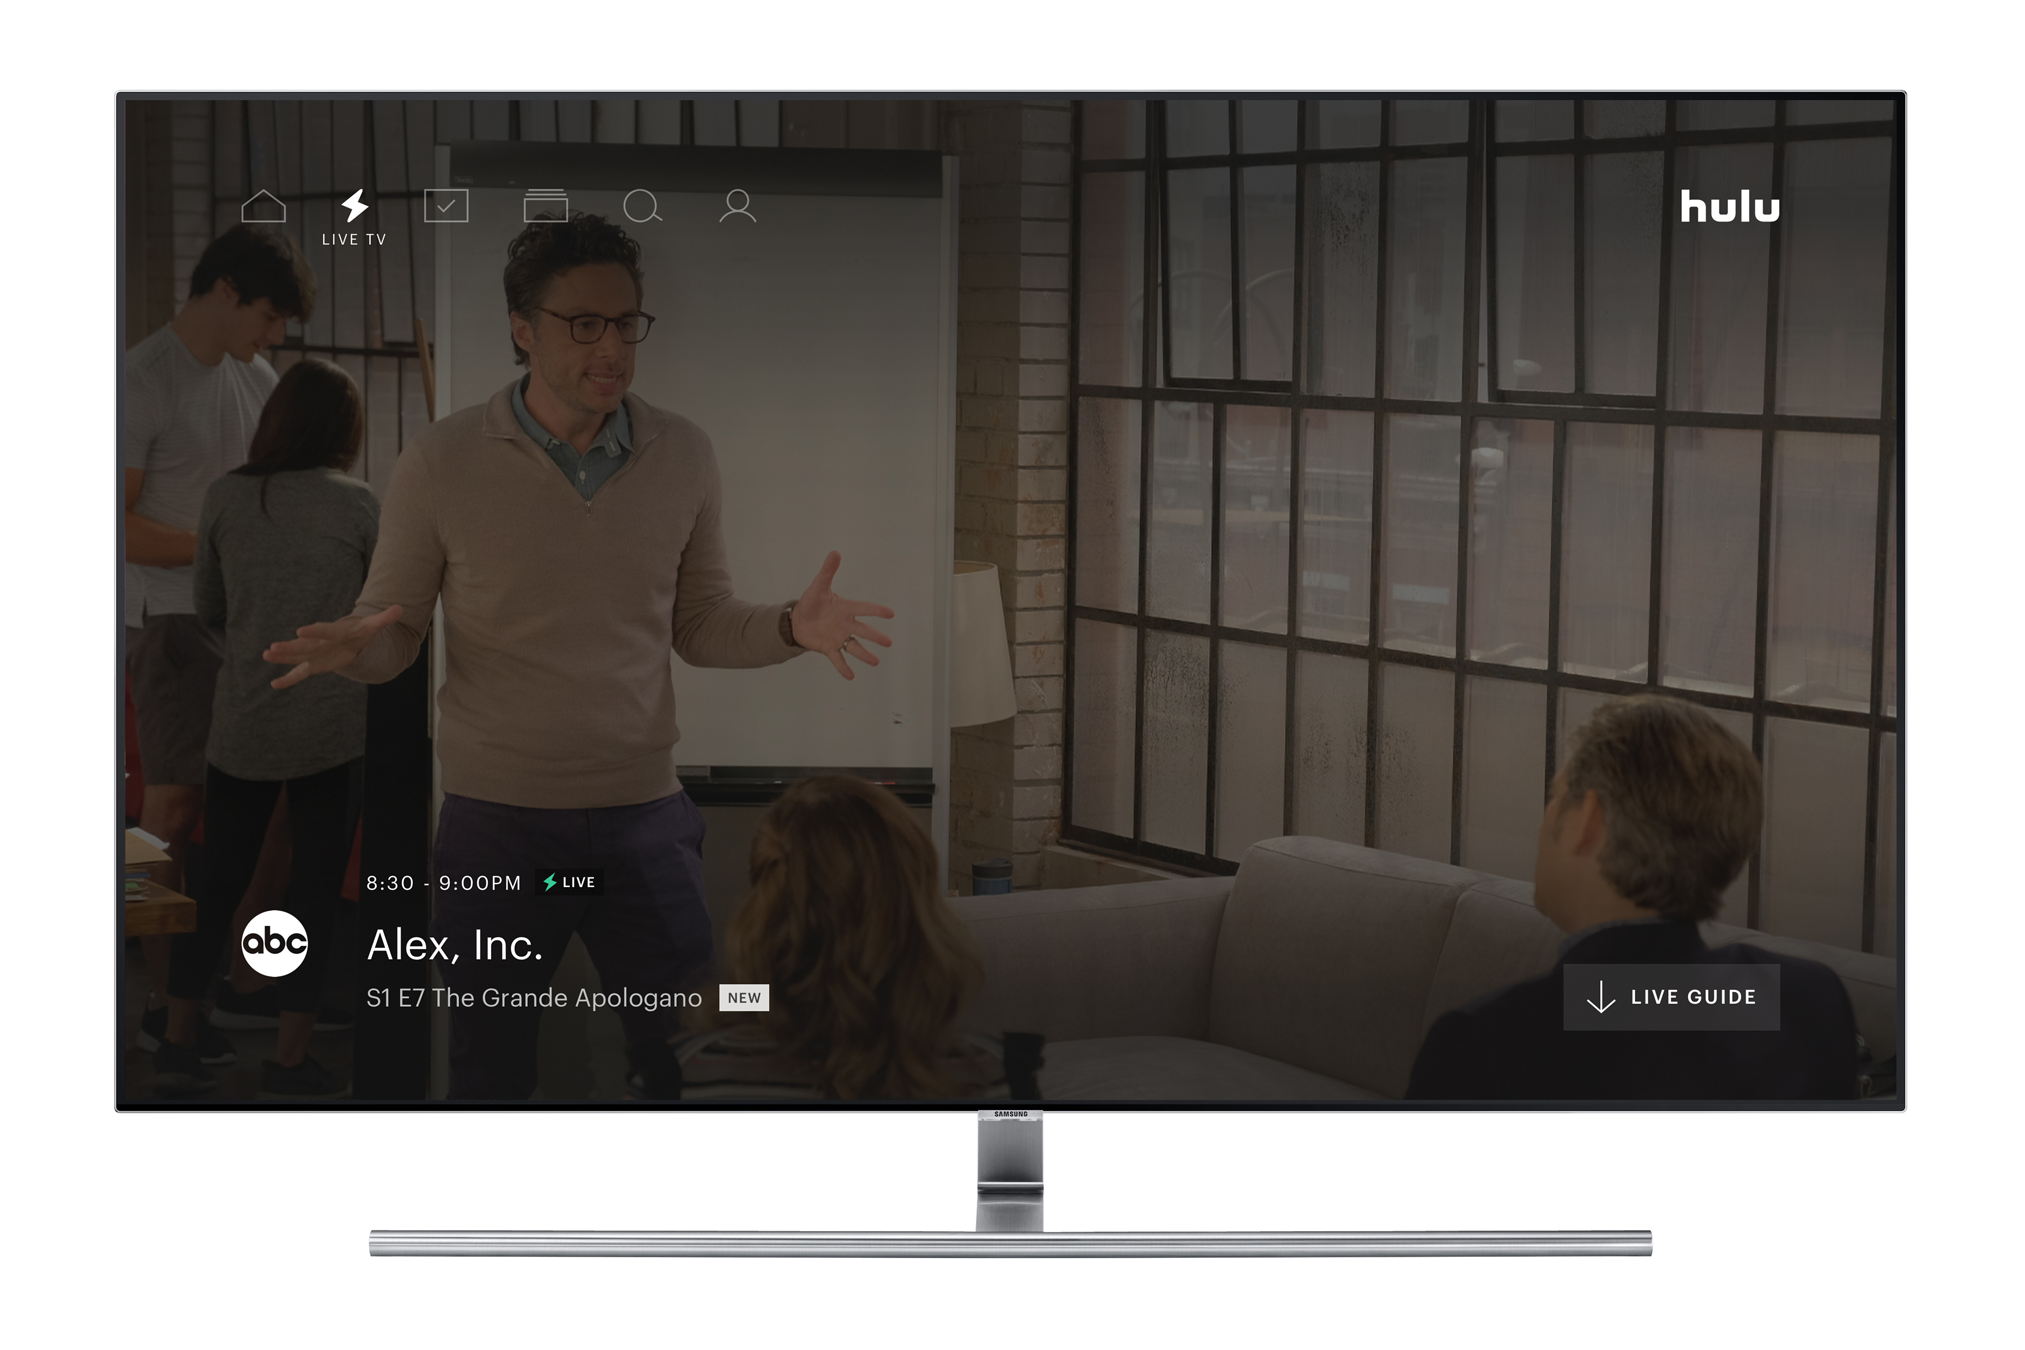 Hulu announces Live TV Guide for streaming service